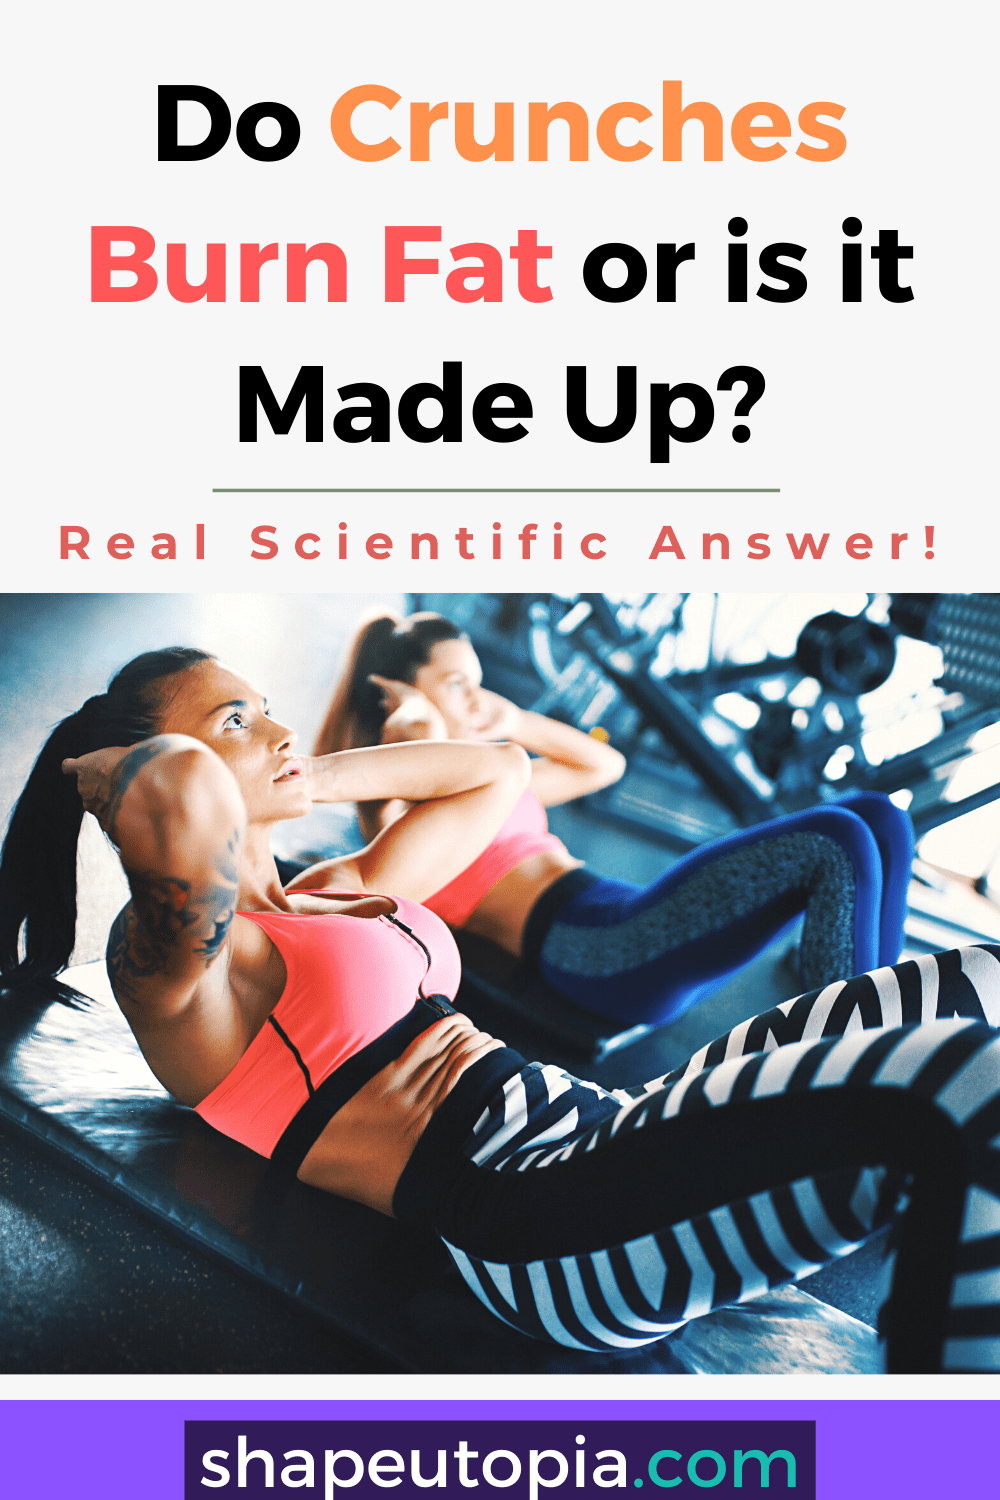 Do Crunches Burn Fat or is it Made Up